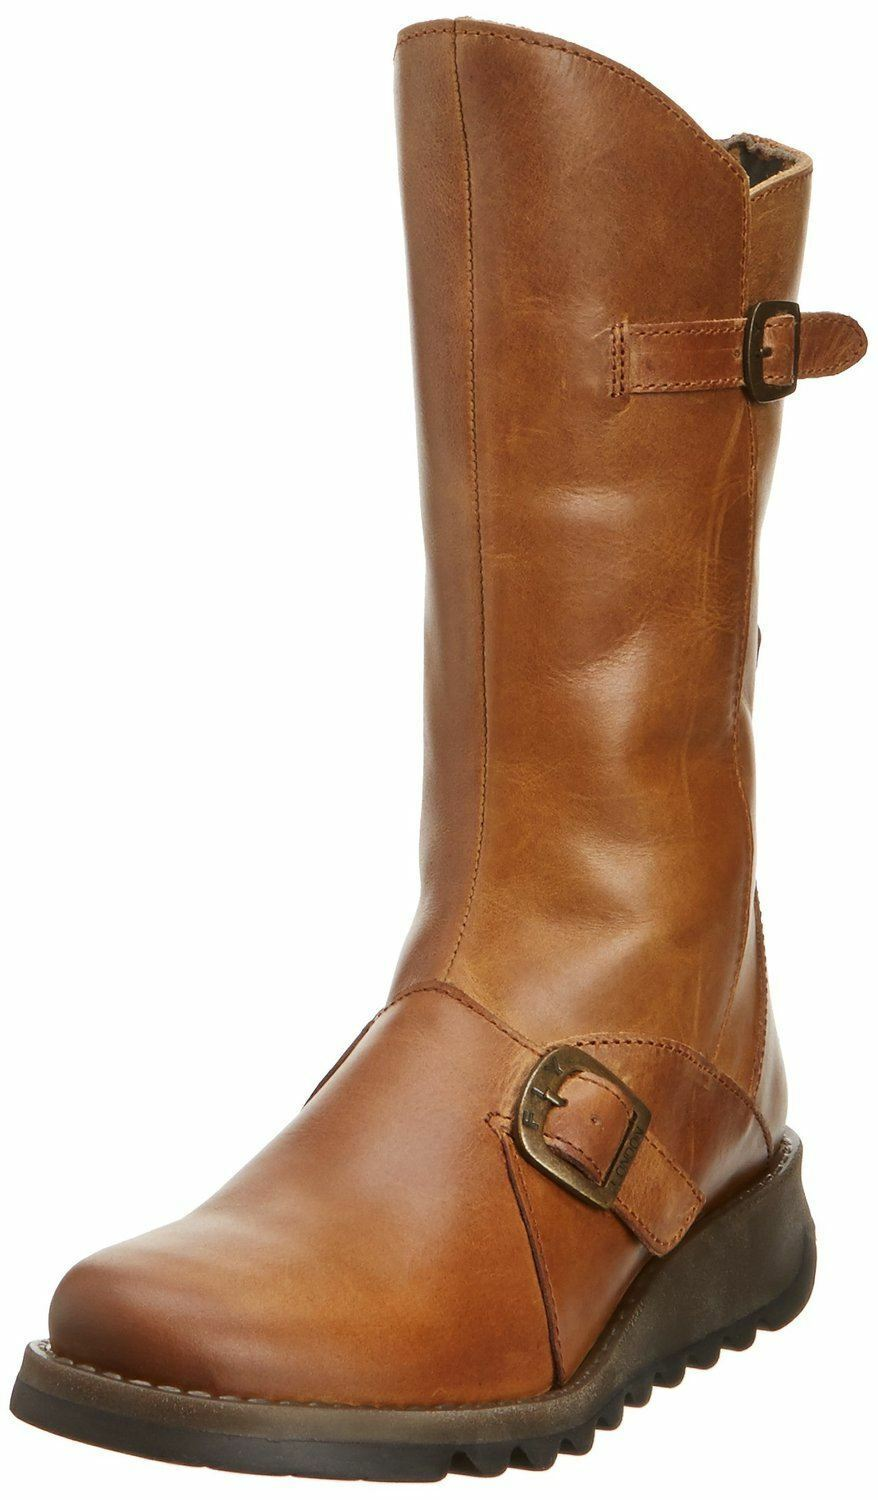 Fly london Mes 2 Camel Leather damen Mid Calf Stiefel